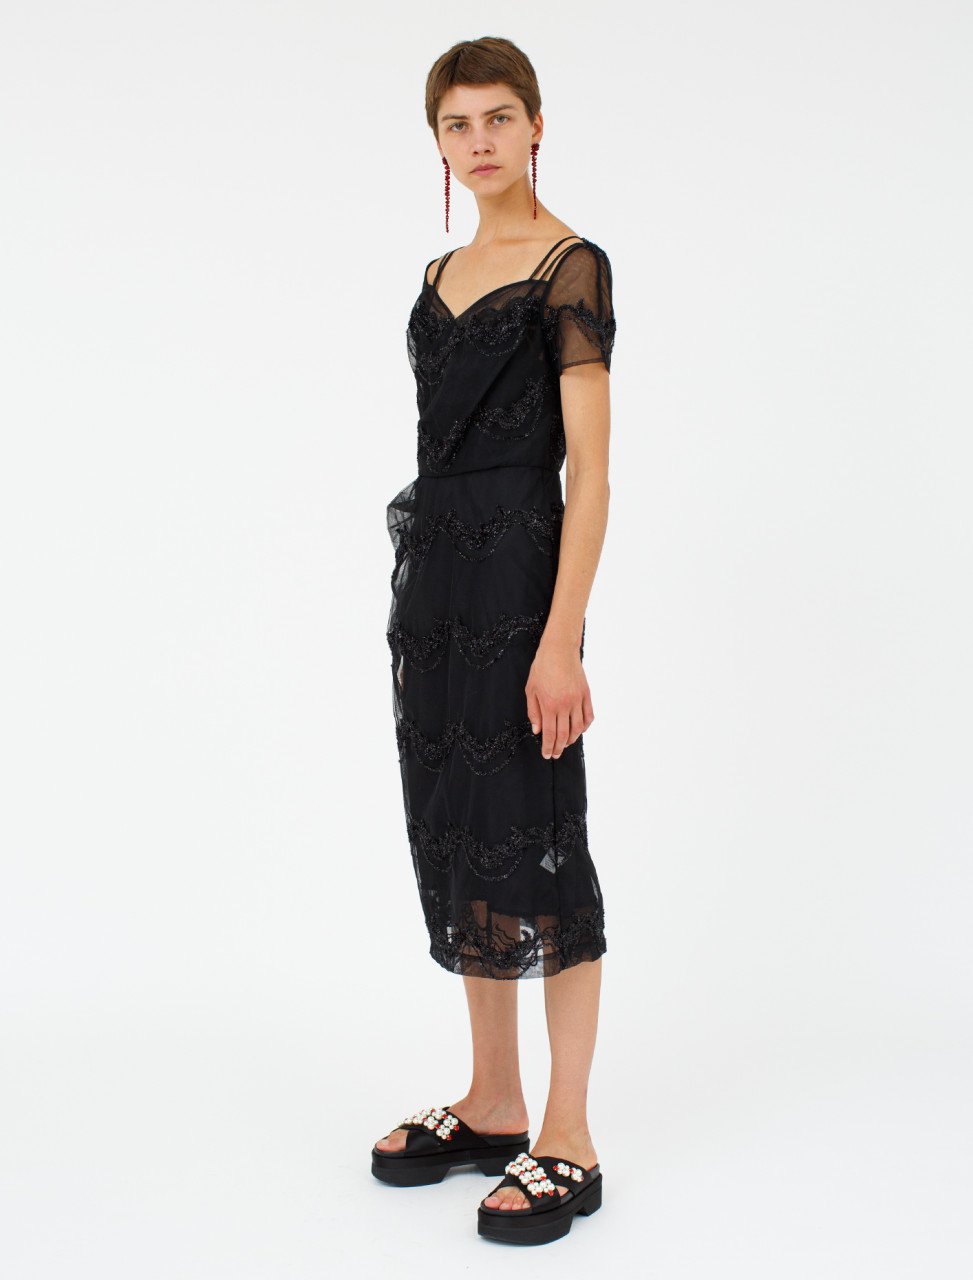 Simone Rocha Side Tuck Tulle Dress